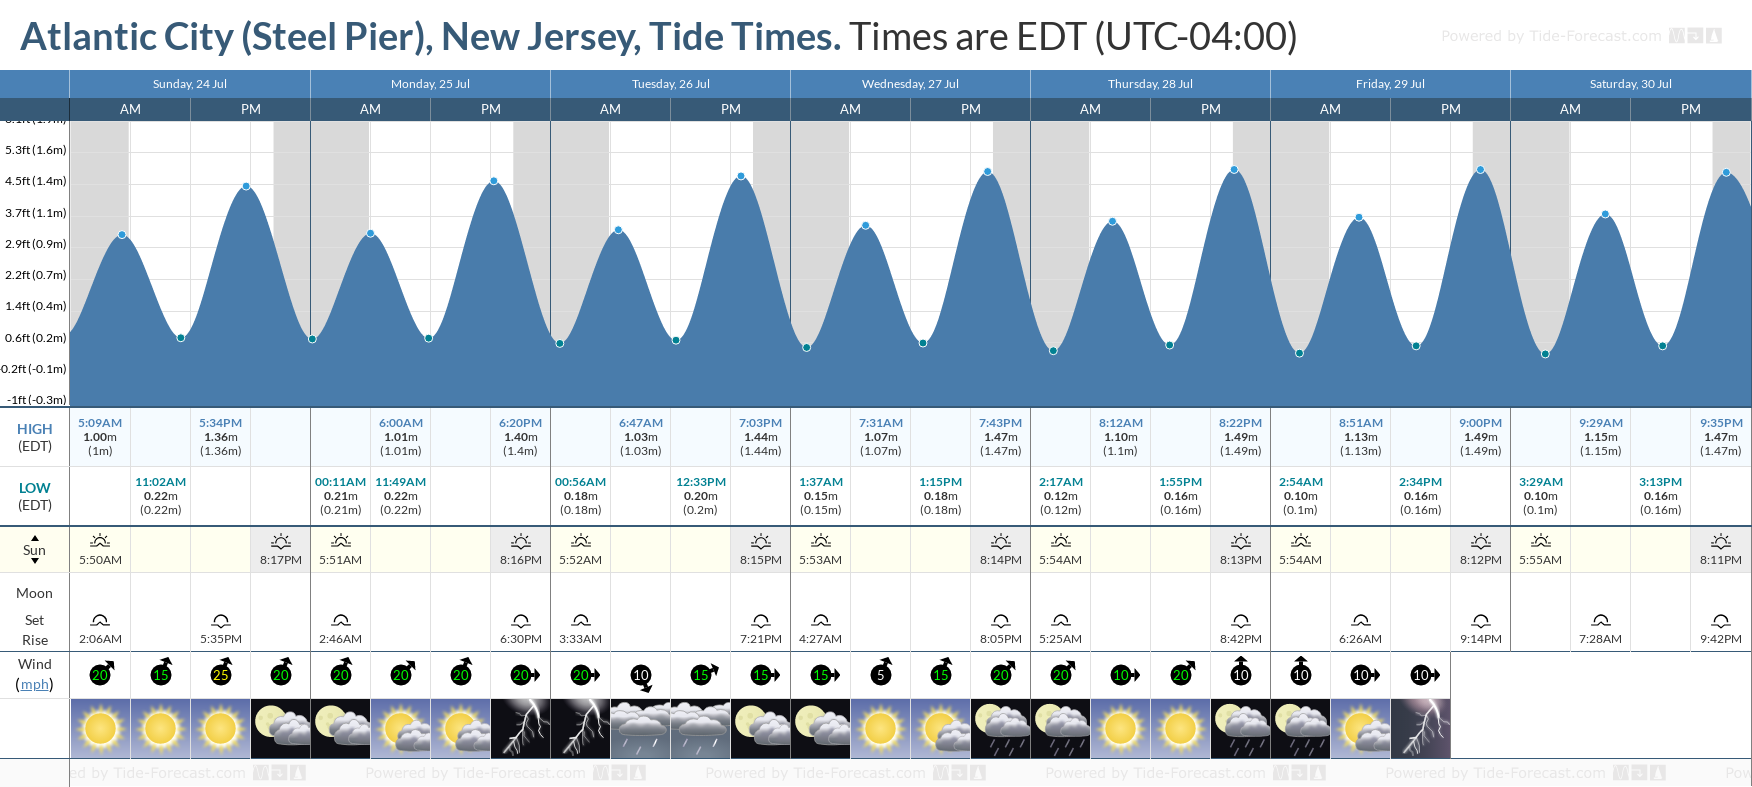 Atlantic City (Steel Pier), New Jersey Tide Chart including high and low tide tide times for the next 7 days